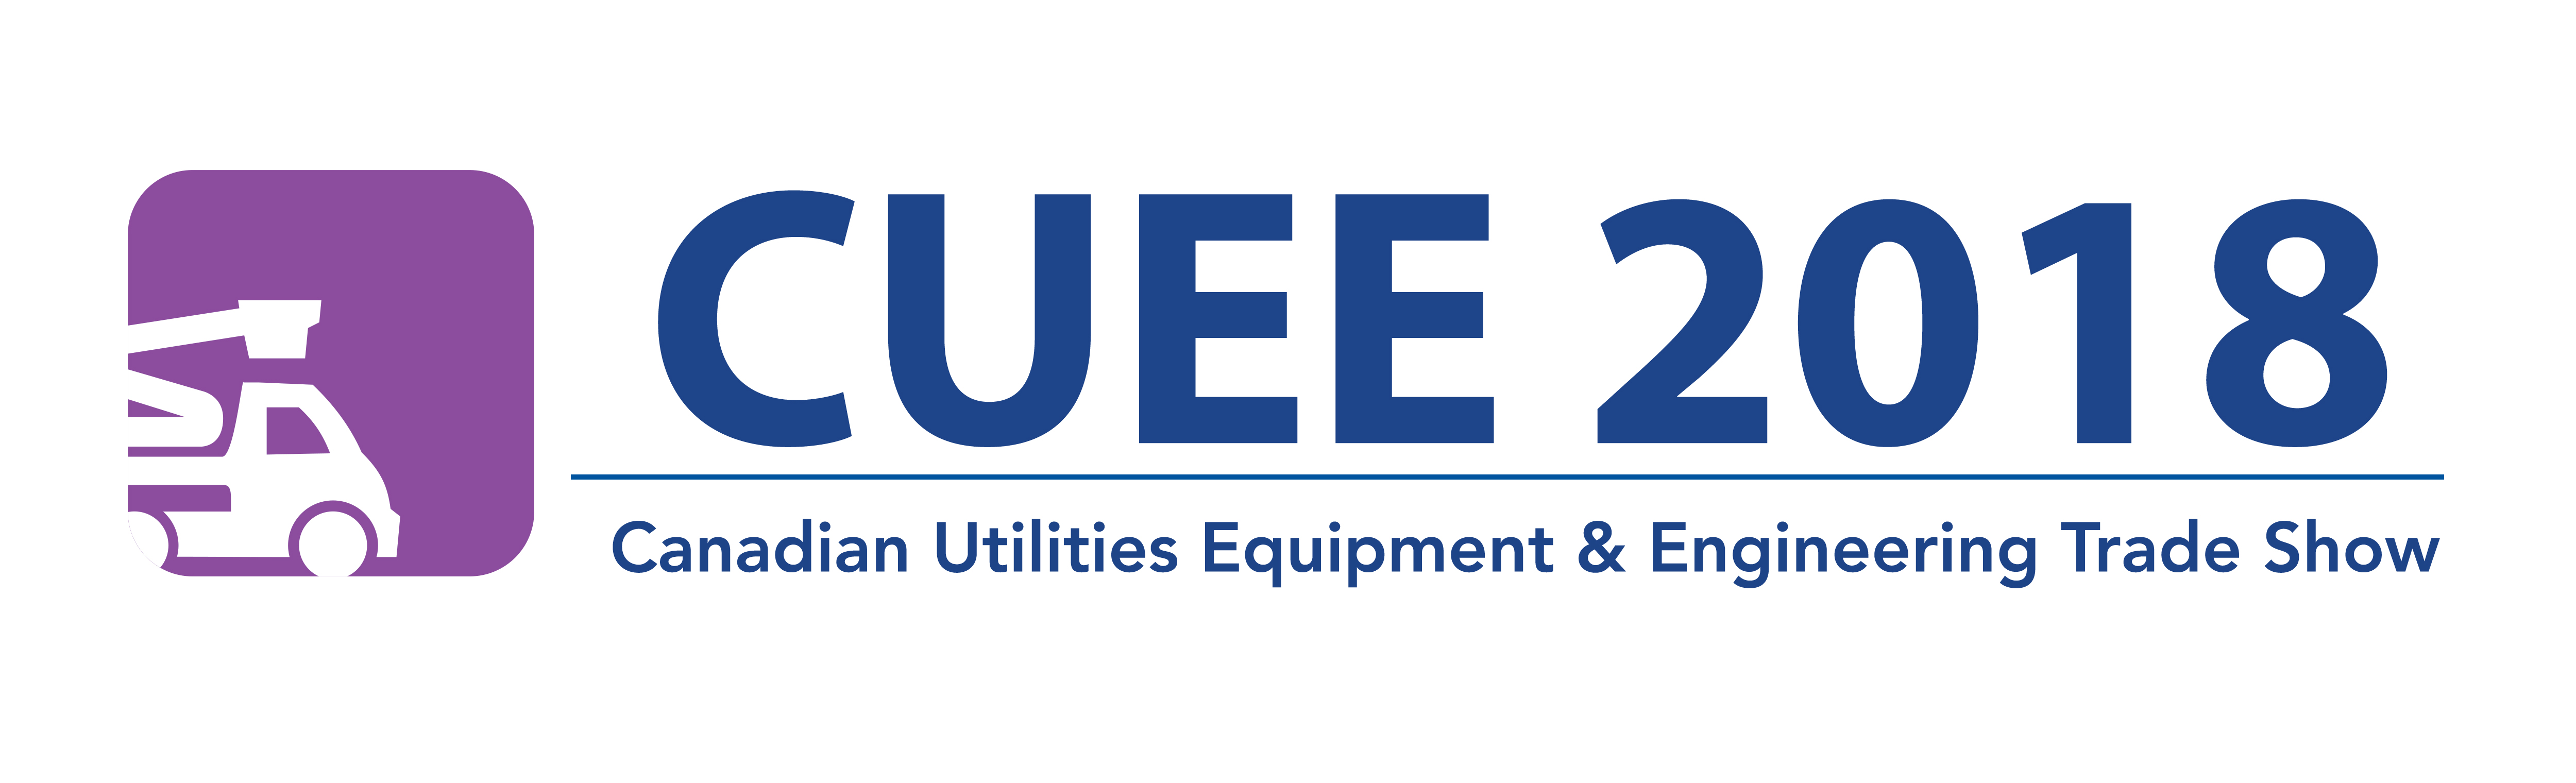 LTL will be at CUEE 2018